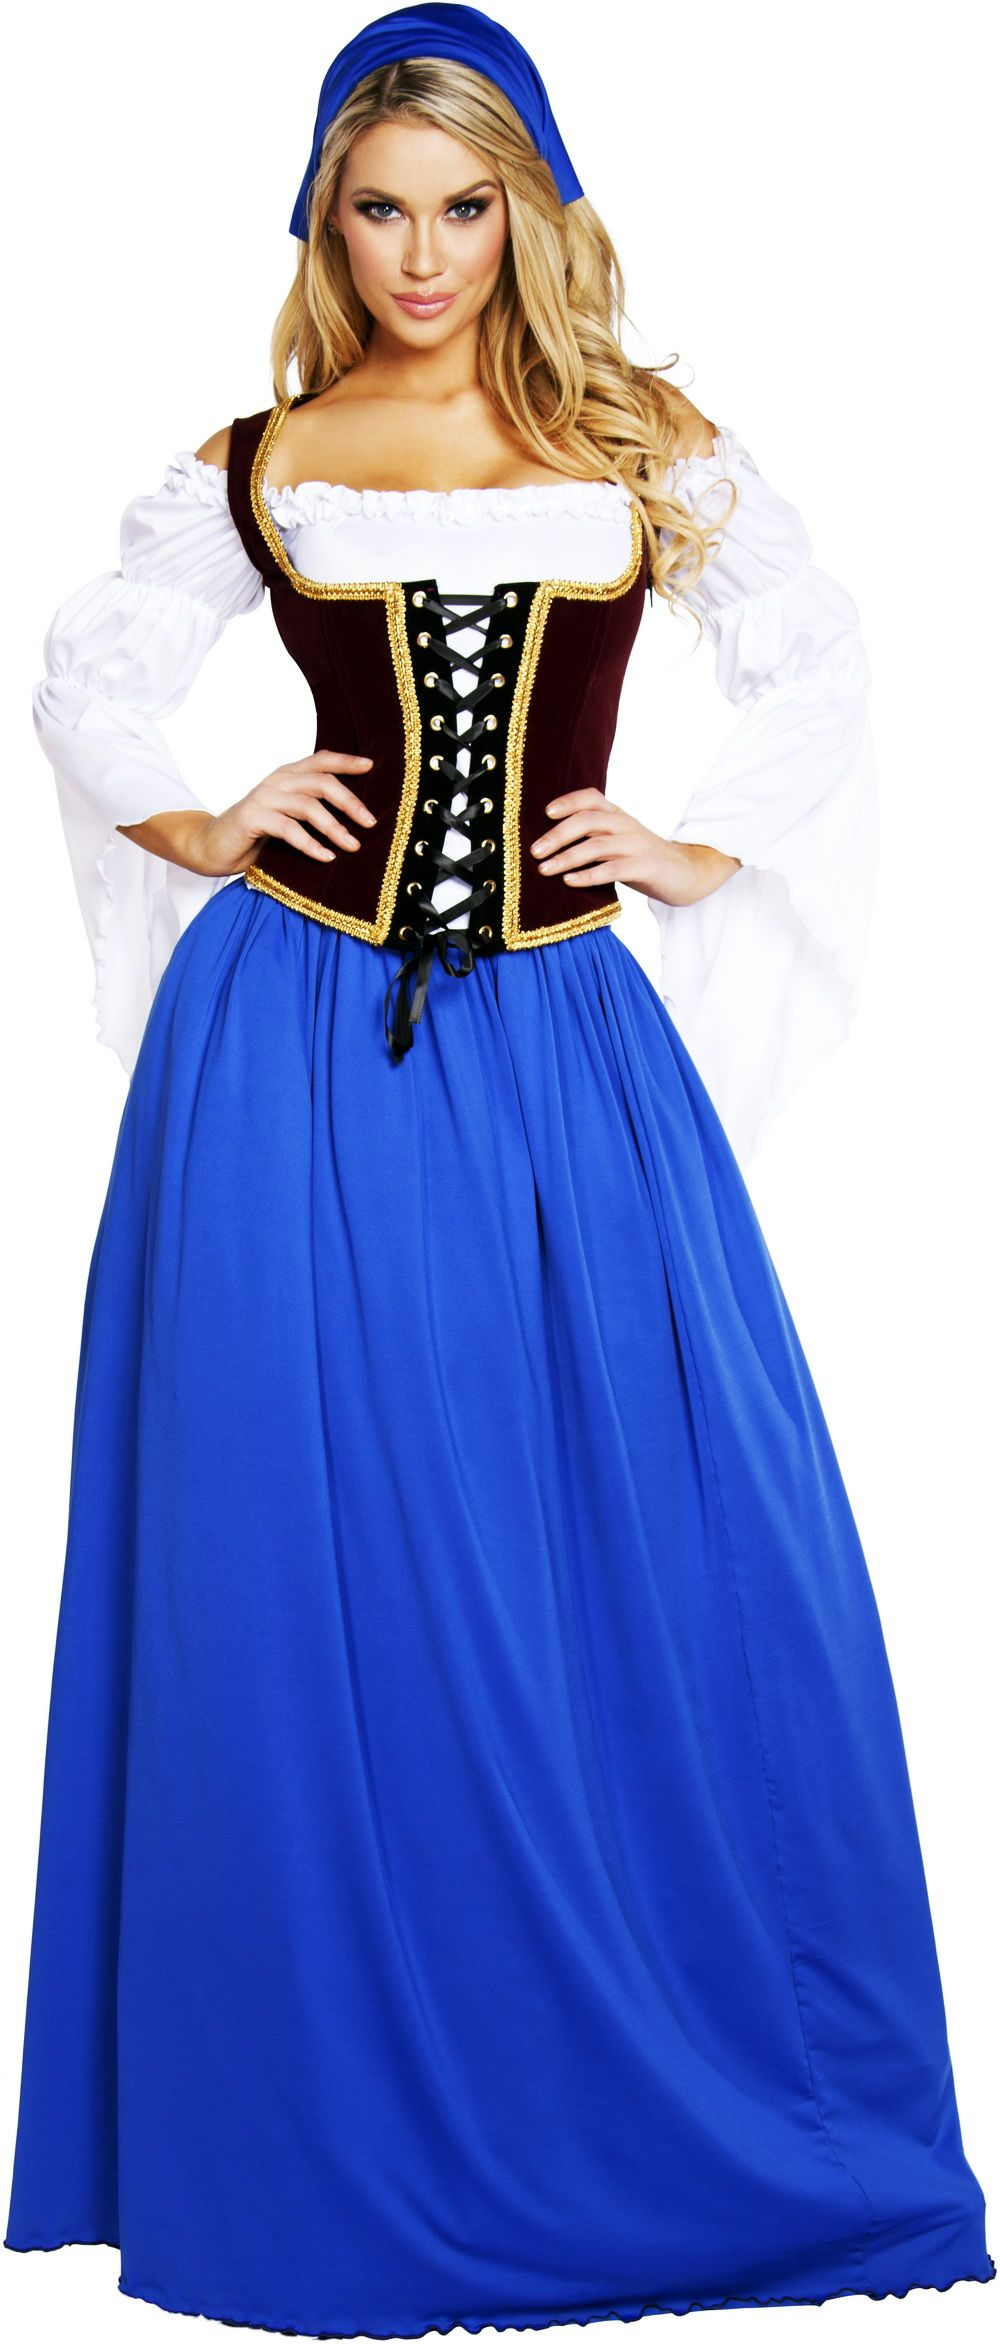 Sexy-Medieval-Wench-Maiden-Off-Shoulder-Blouse-Renaissance-Costume-Adult- Women 406023481568